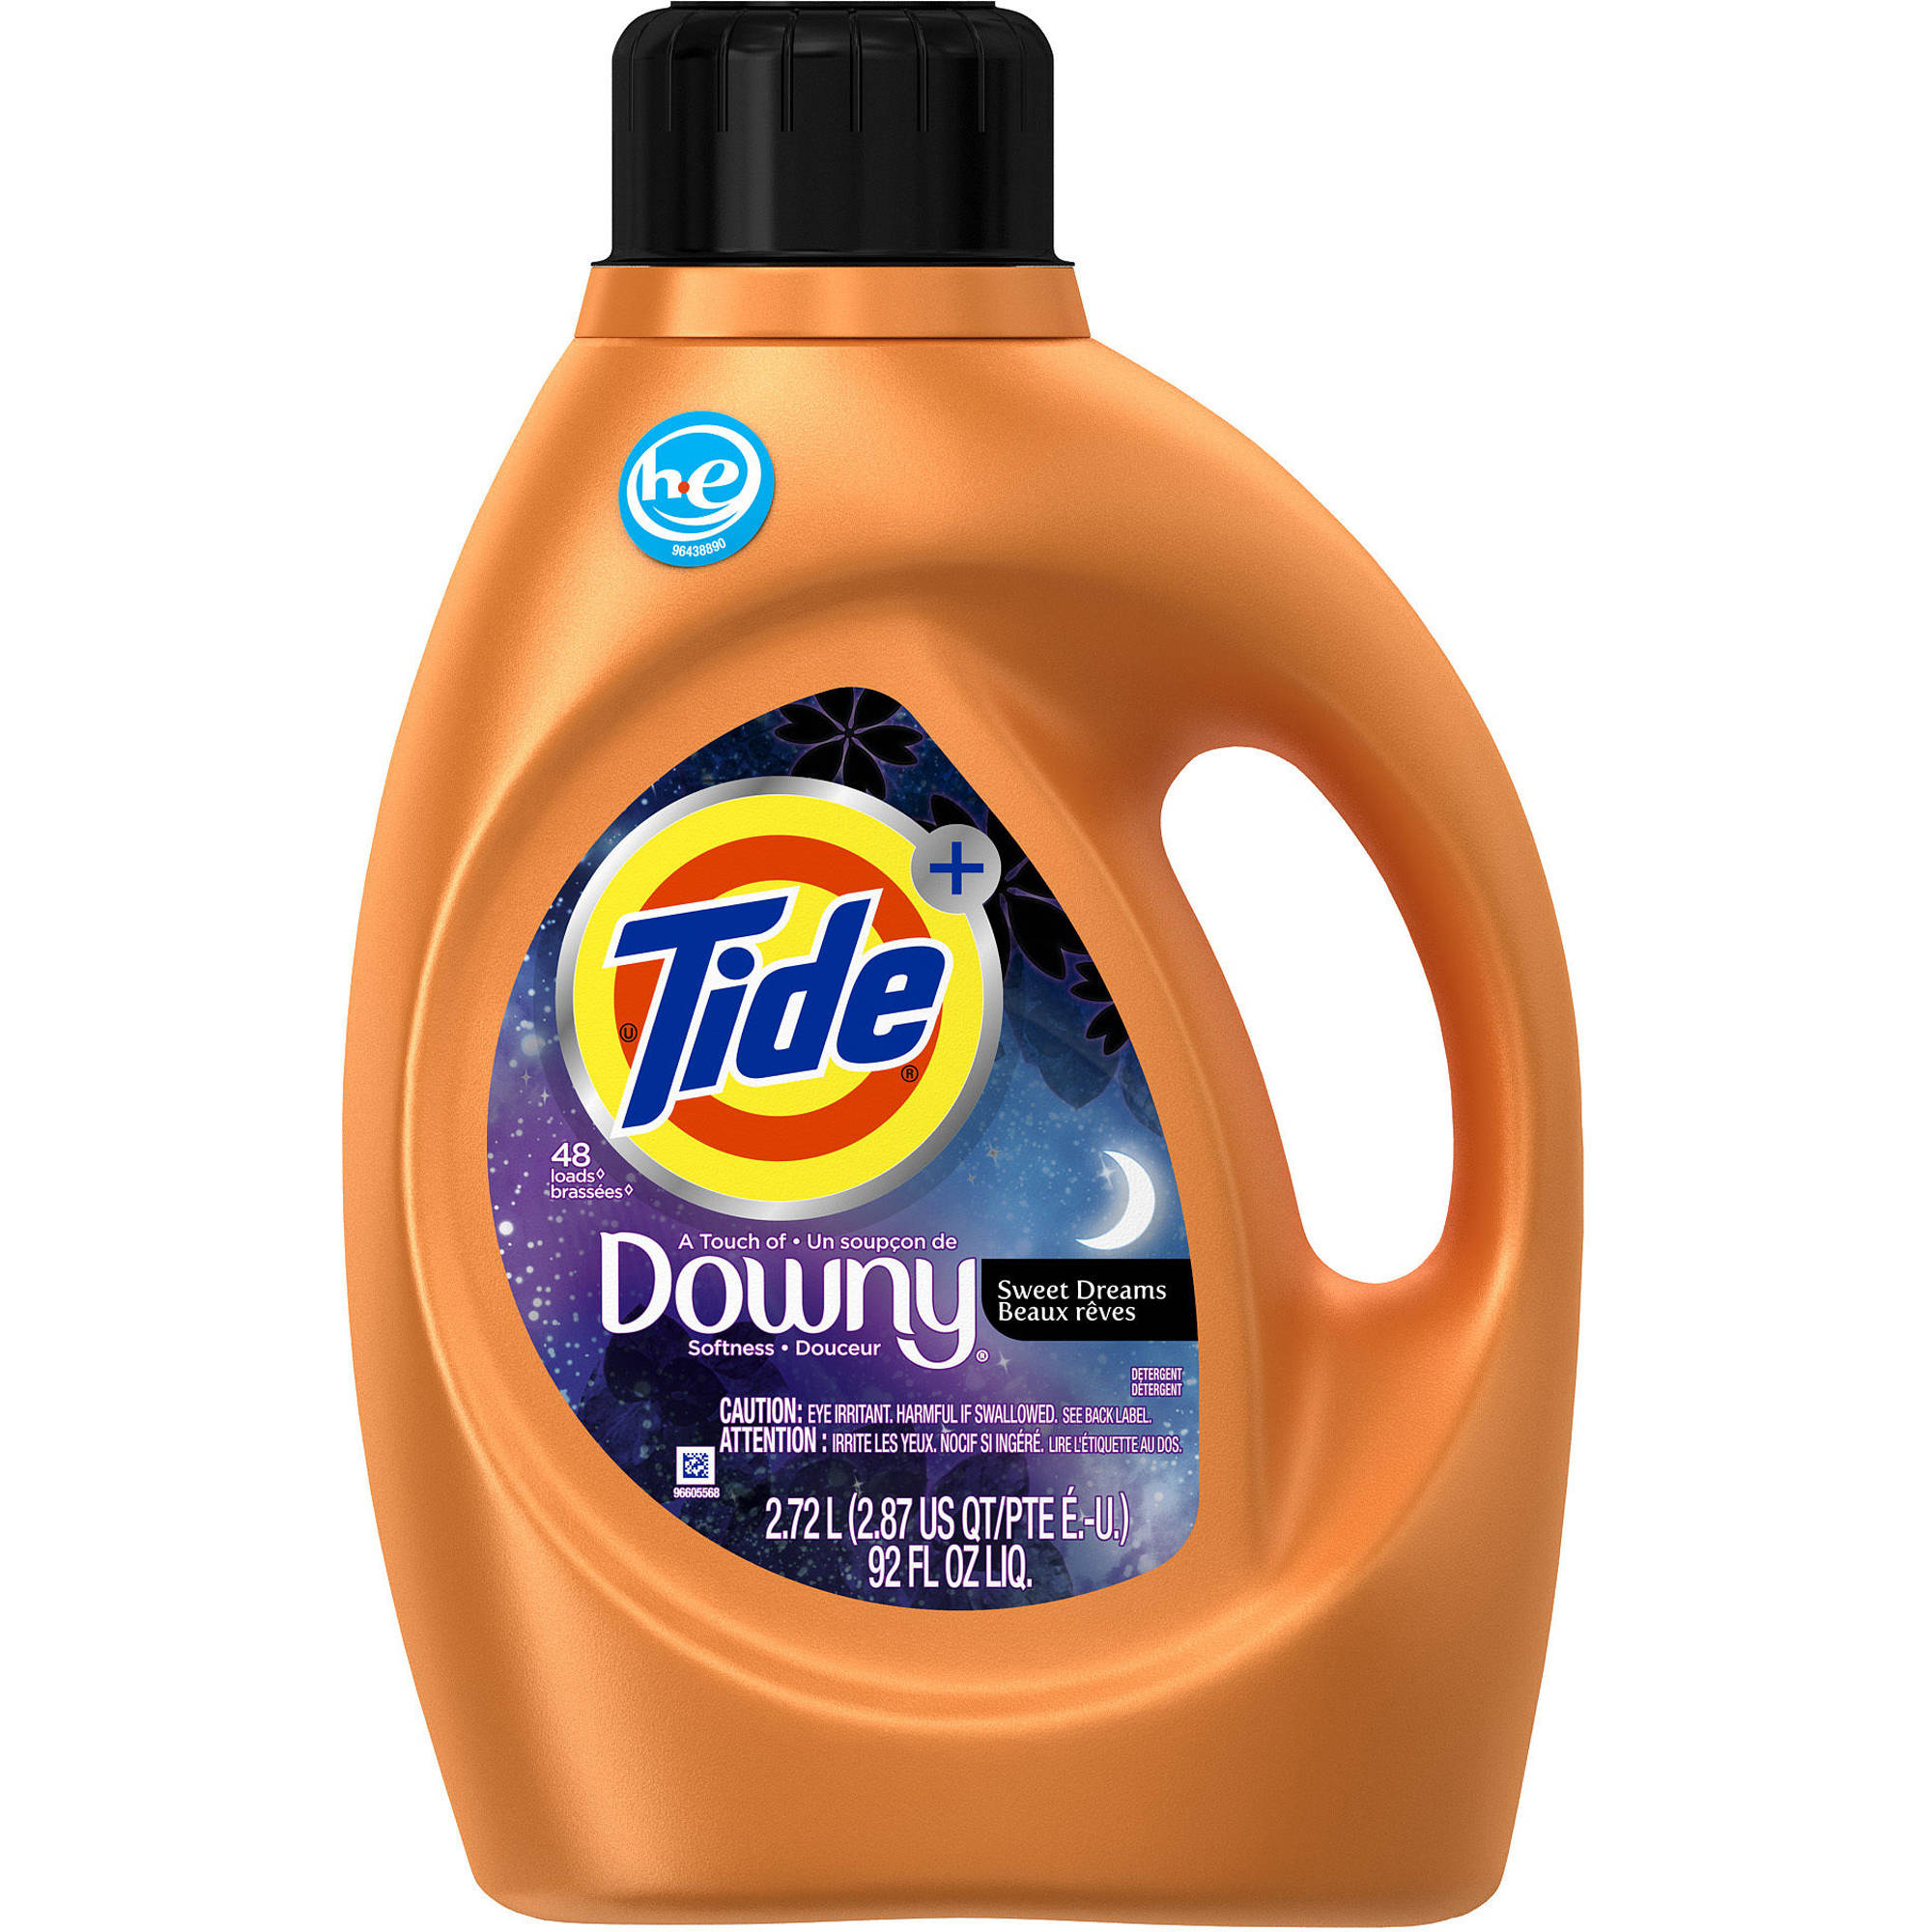 Tide Plus Downy Sweet Dreams HE Turbo Clean Liquid Laundry Detergent, 48 Loads 92 oz